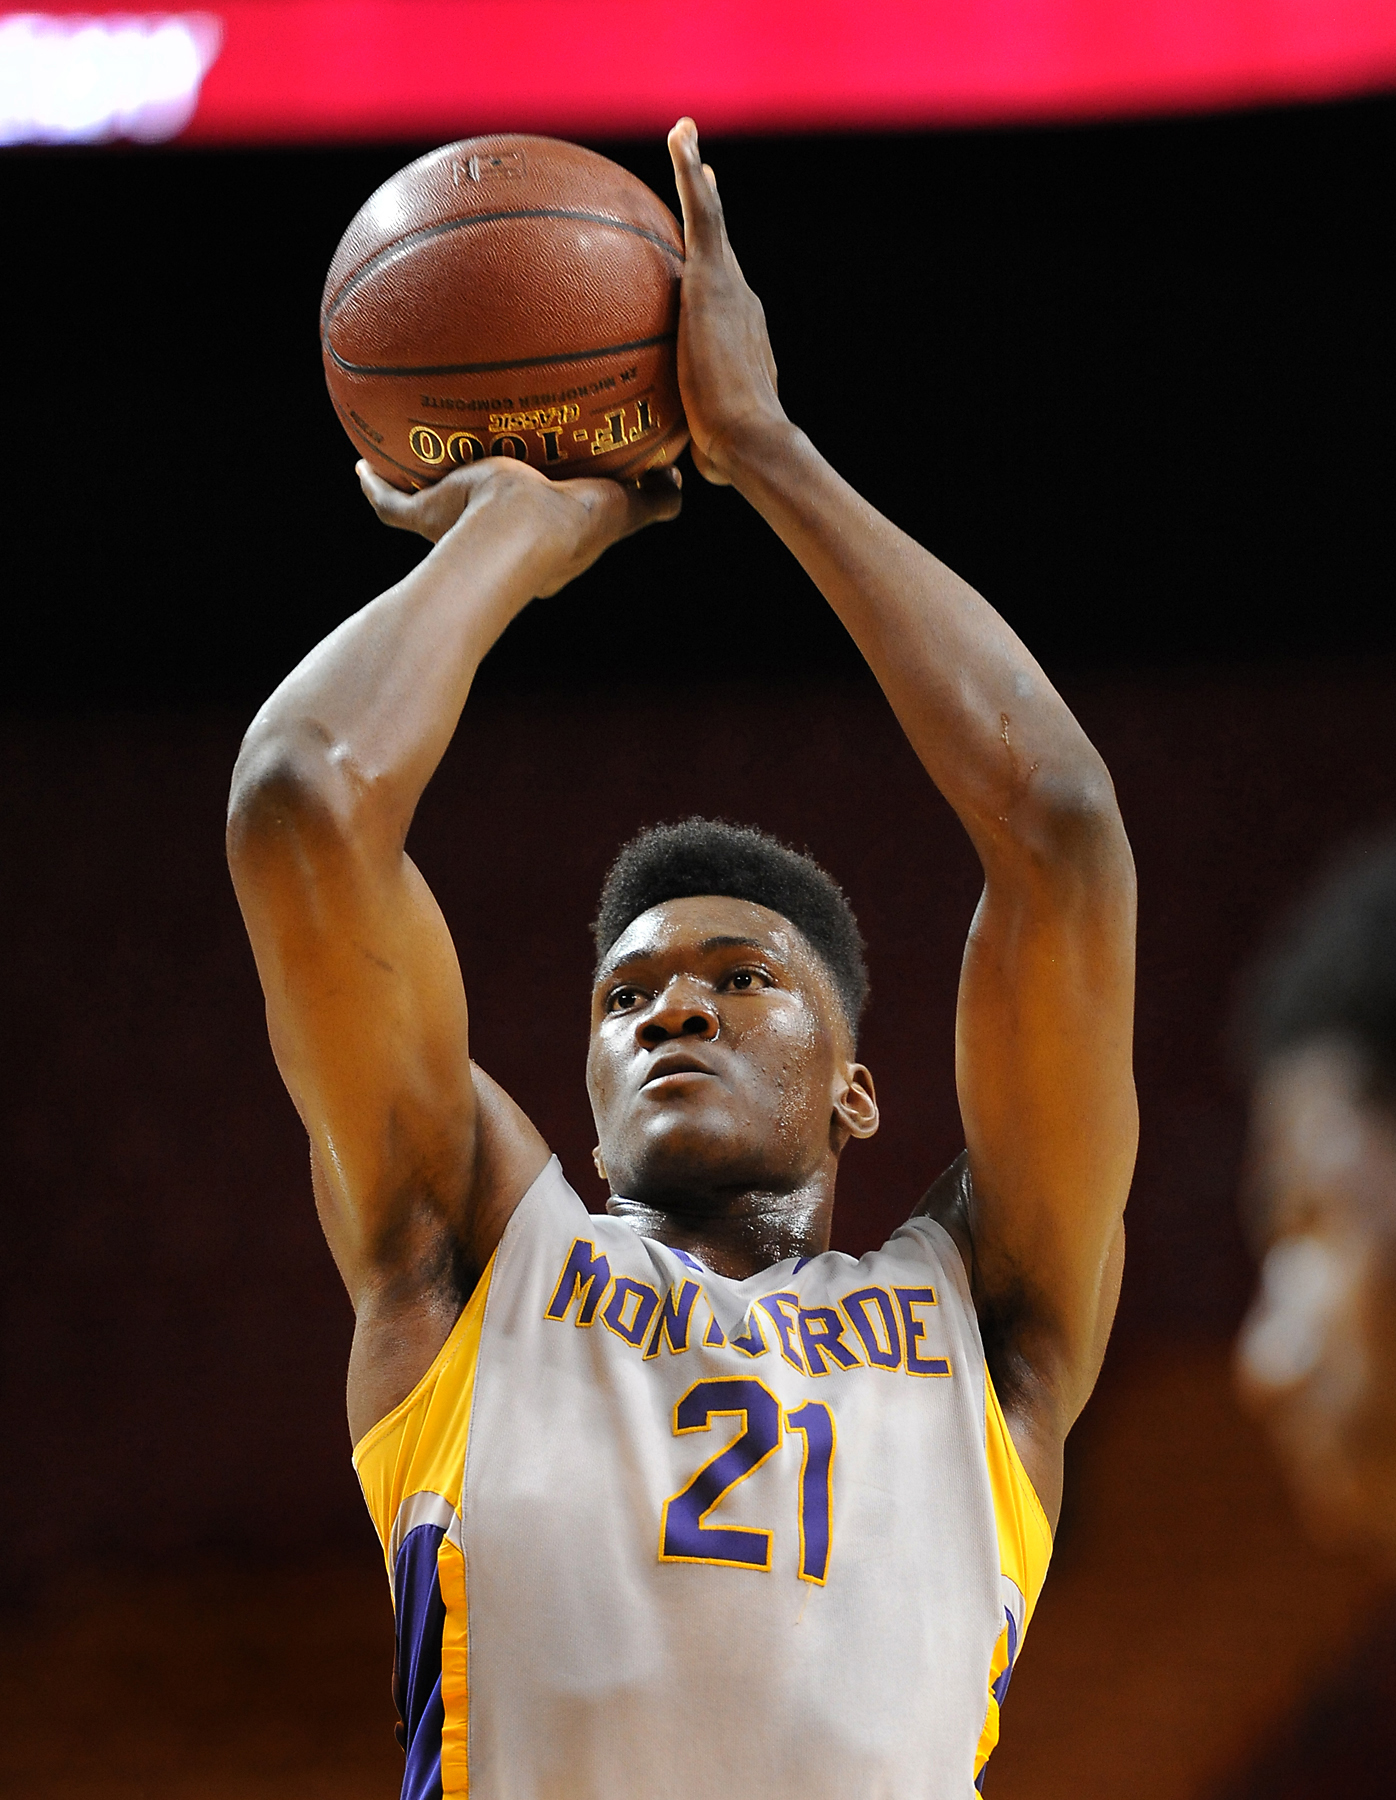 11/24/15 10:02:59 PM -- Miami, FL, U.S.A -- 2015 ARS® / Rescue Rooter® Hoophall Miami Invitational High School Showcase. -- Montverde Academy forward forward Bruno Fernando (21) shoots a freethrow against the Dillard Panthers in the first half at American Airlines Arena. Photo by USA TODAY Robert Duyos Sports Images, Gannett ORG XMIT: US 134116 HoopHall South 11/24/ [Via MerlinFTP Drop]